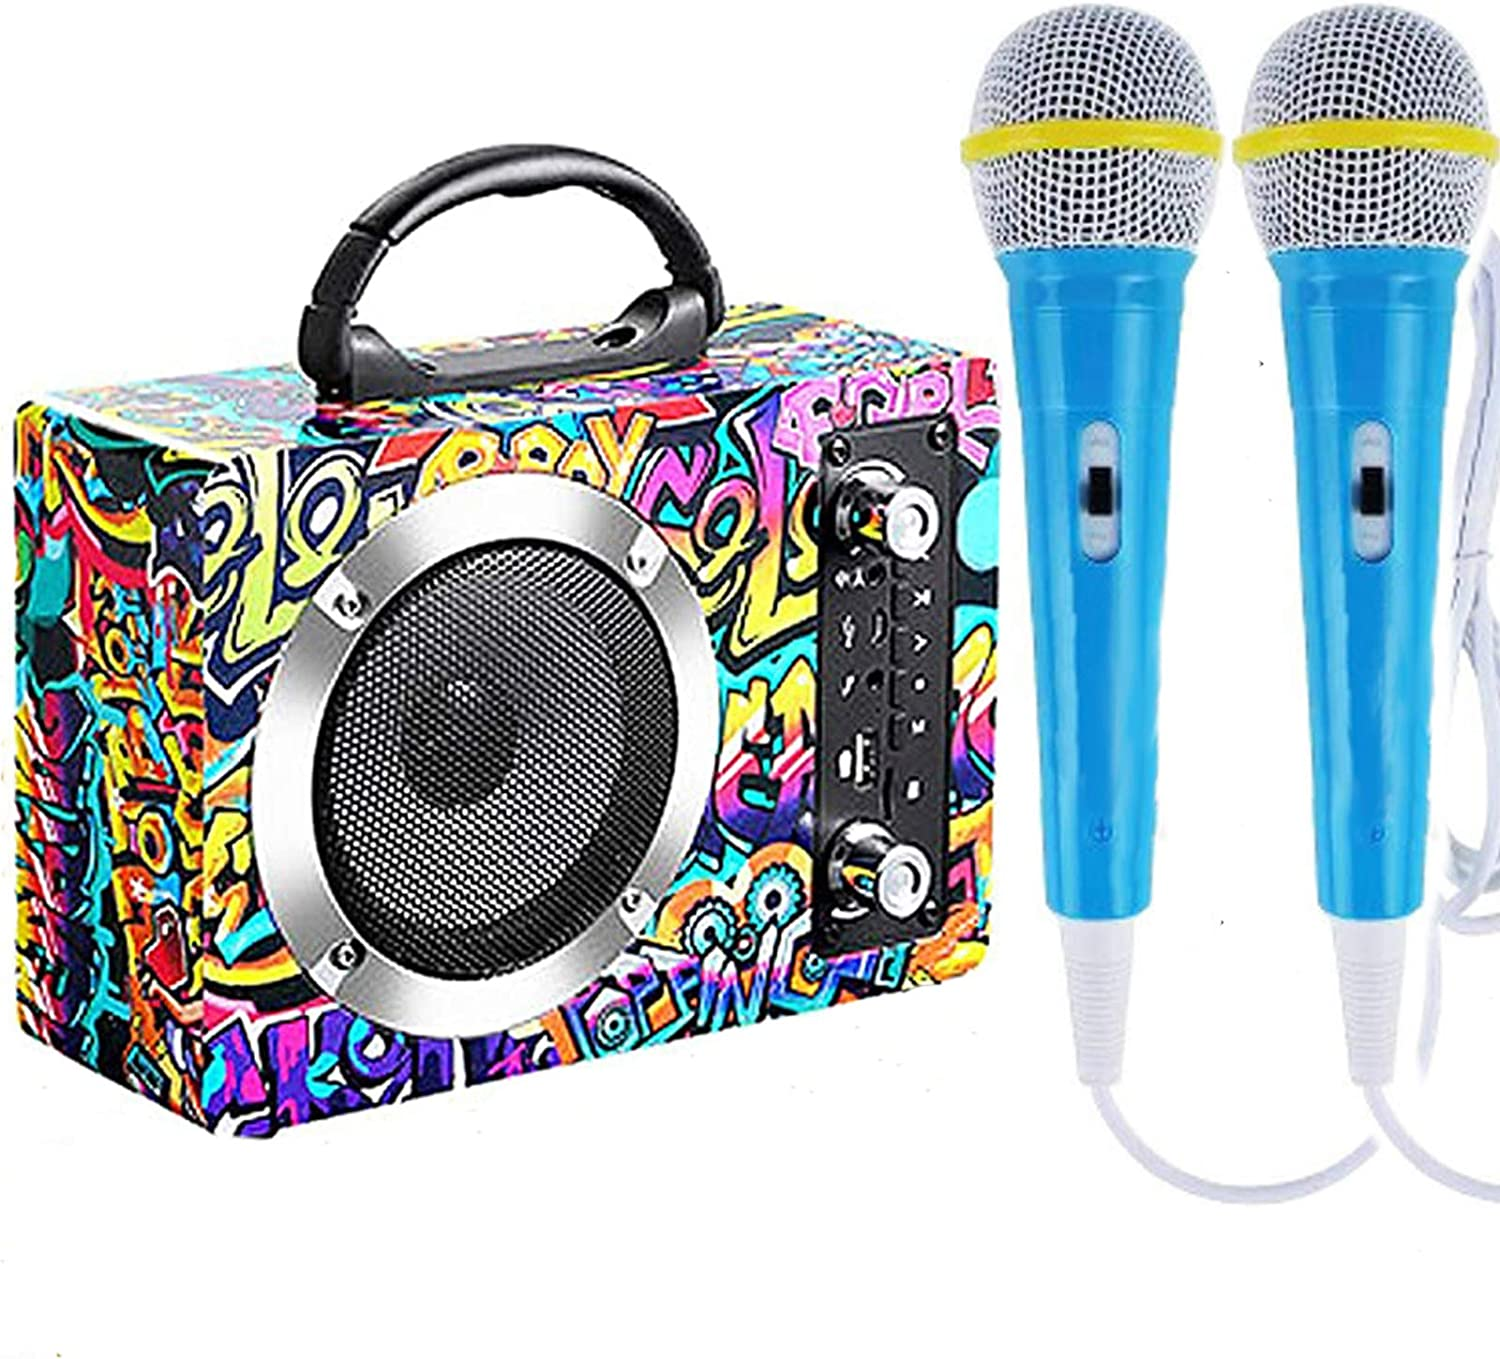 ParfaitRever Wooden Bluetooth Karaoke Machine for Kids & Adults, Cartoon Plated Rechargeable Wireless Speaker Music Box MP3 Player with 2 Microphones for Party Birthday Gift